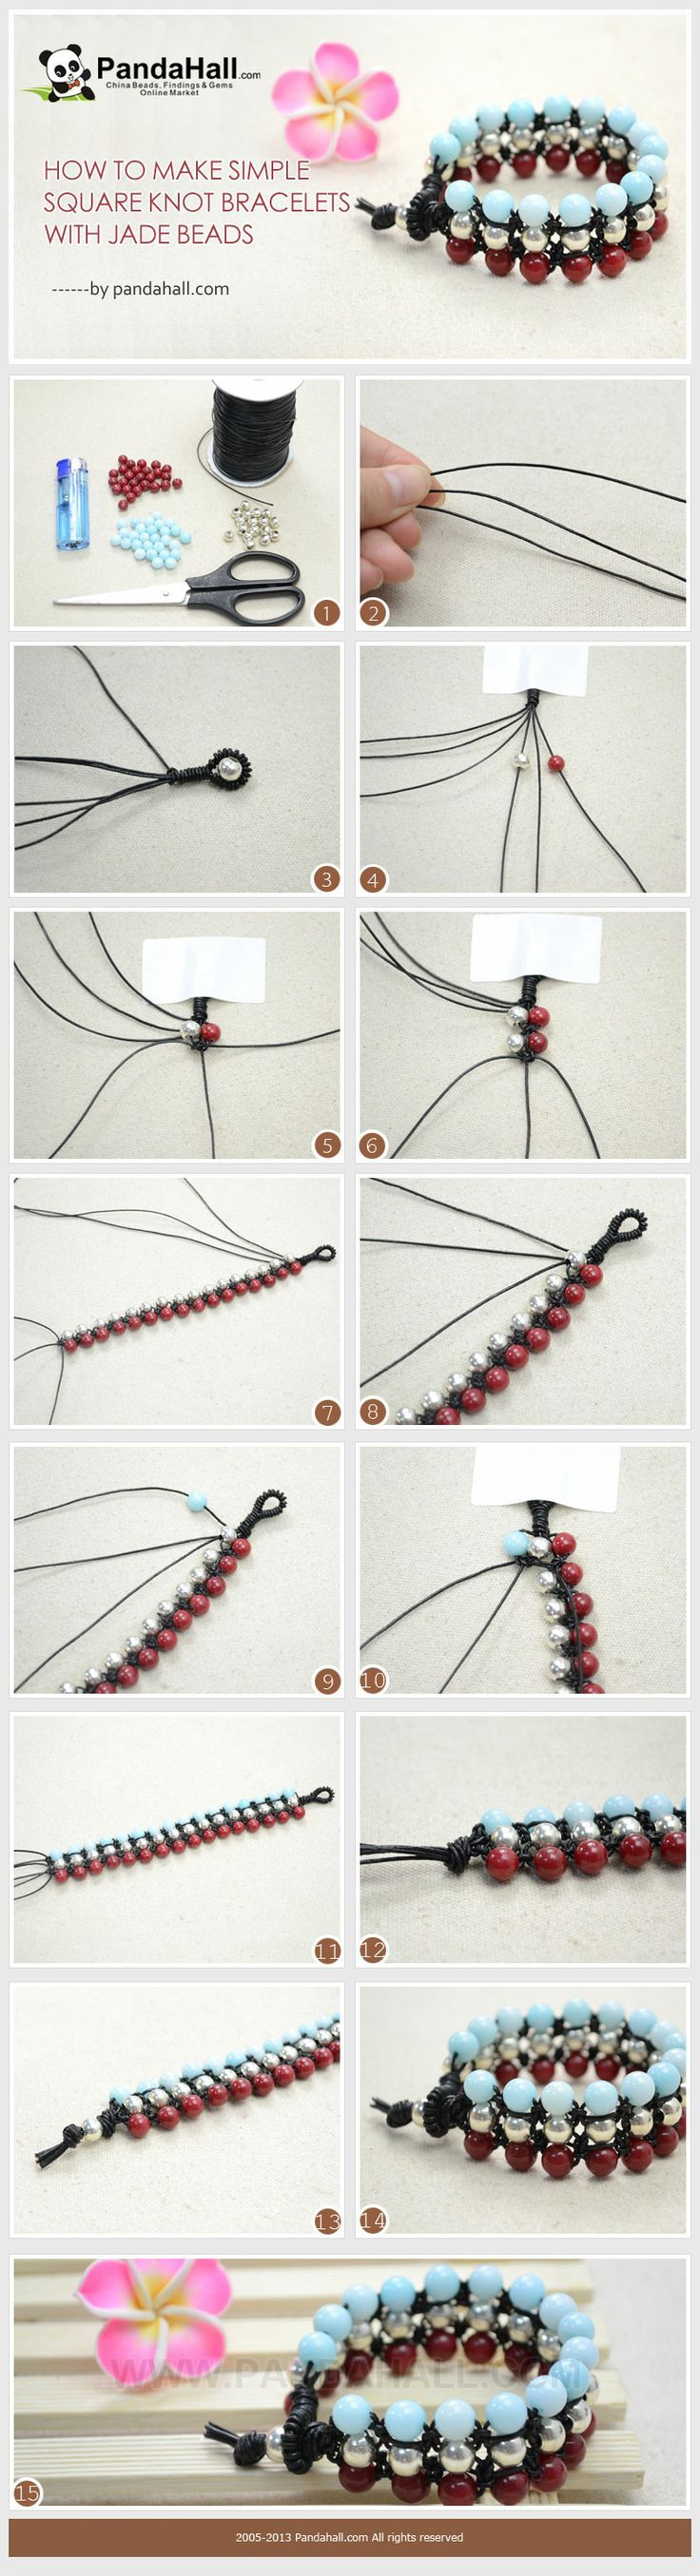 #DIY How to Make Simple Square Knot Bracelets with Jade Beads